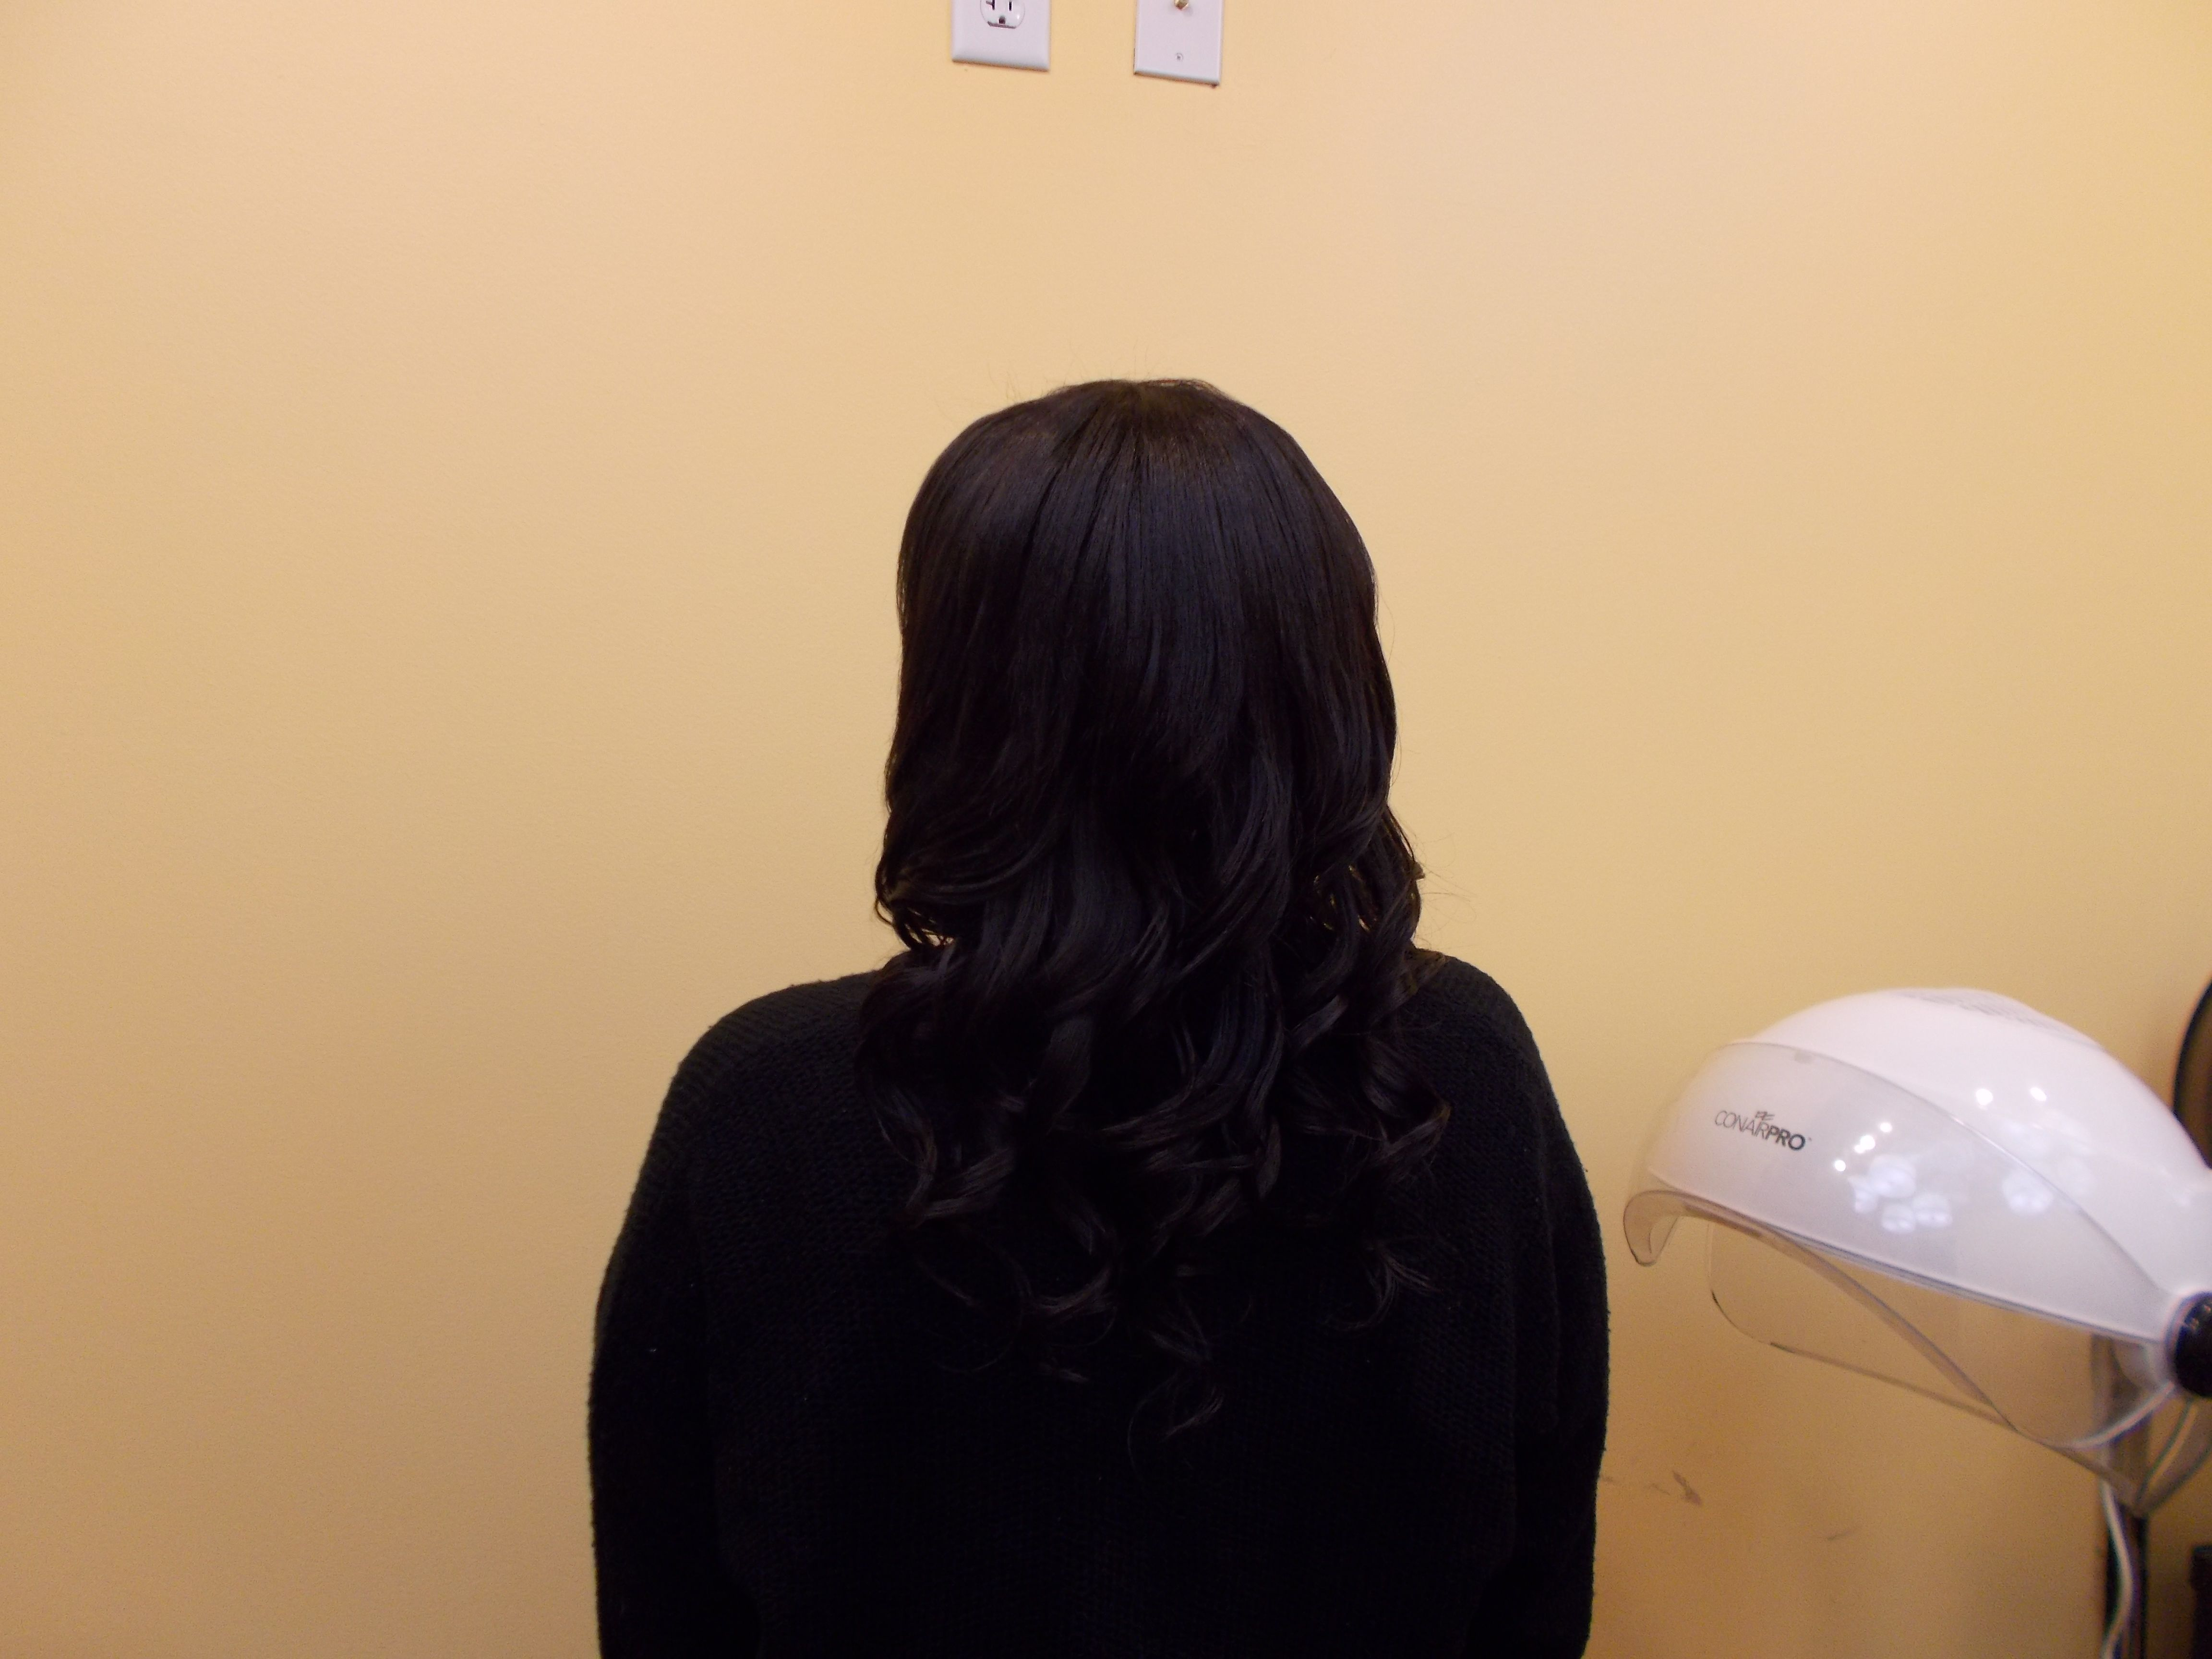 Braidless sew in hair extensions after.....call for a consultation at 407 507 3000...Prices start at $250 for a full head with 100% brazalian remy hair included